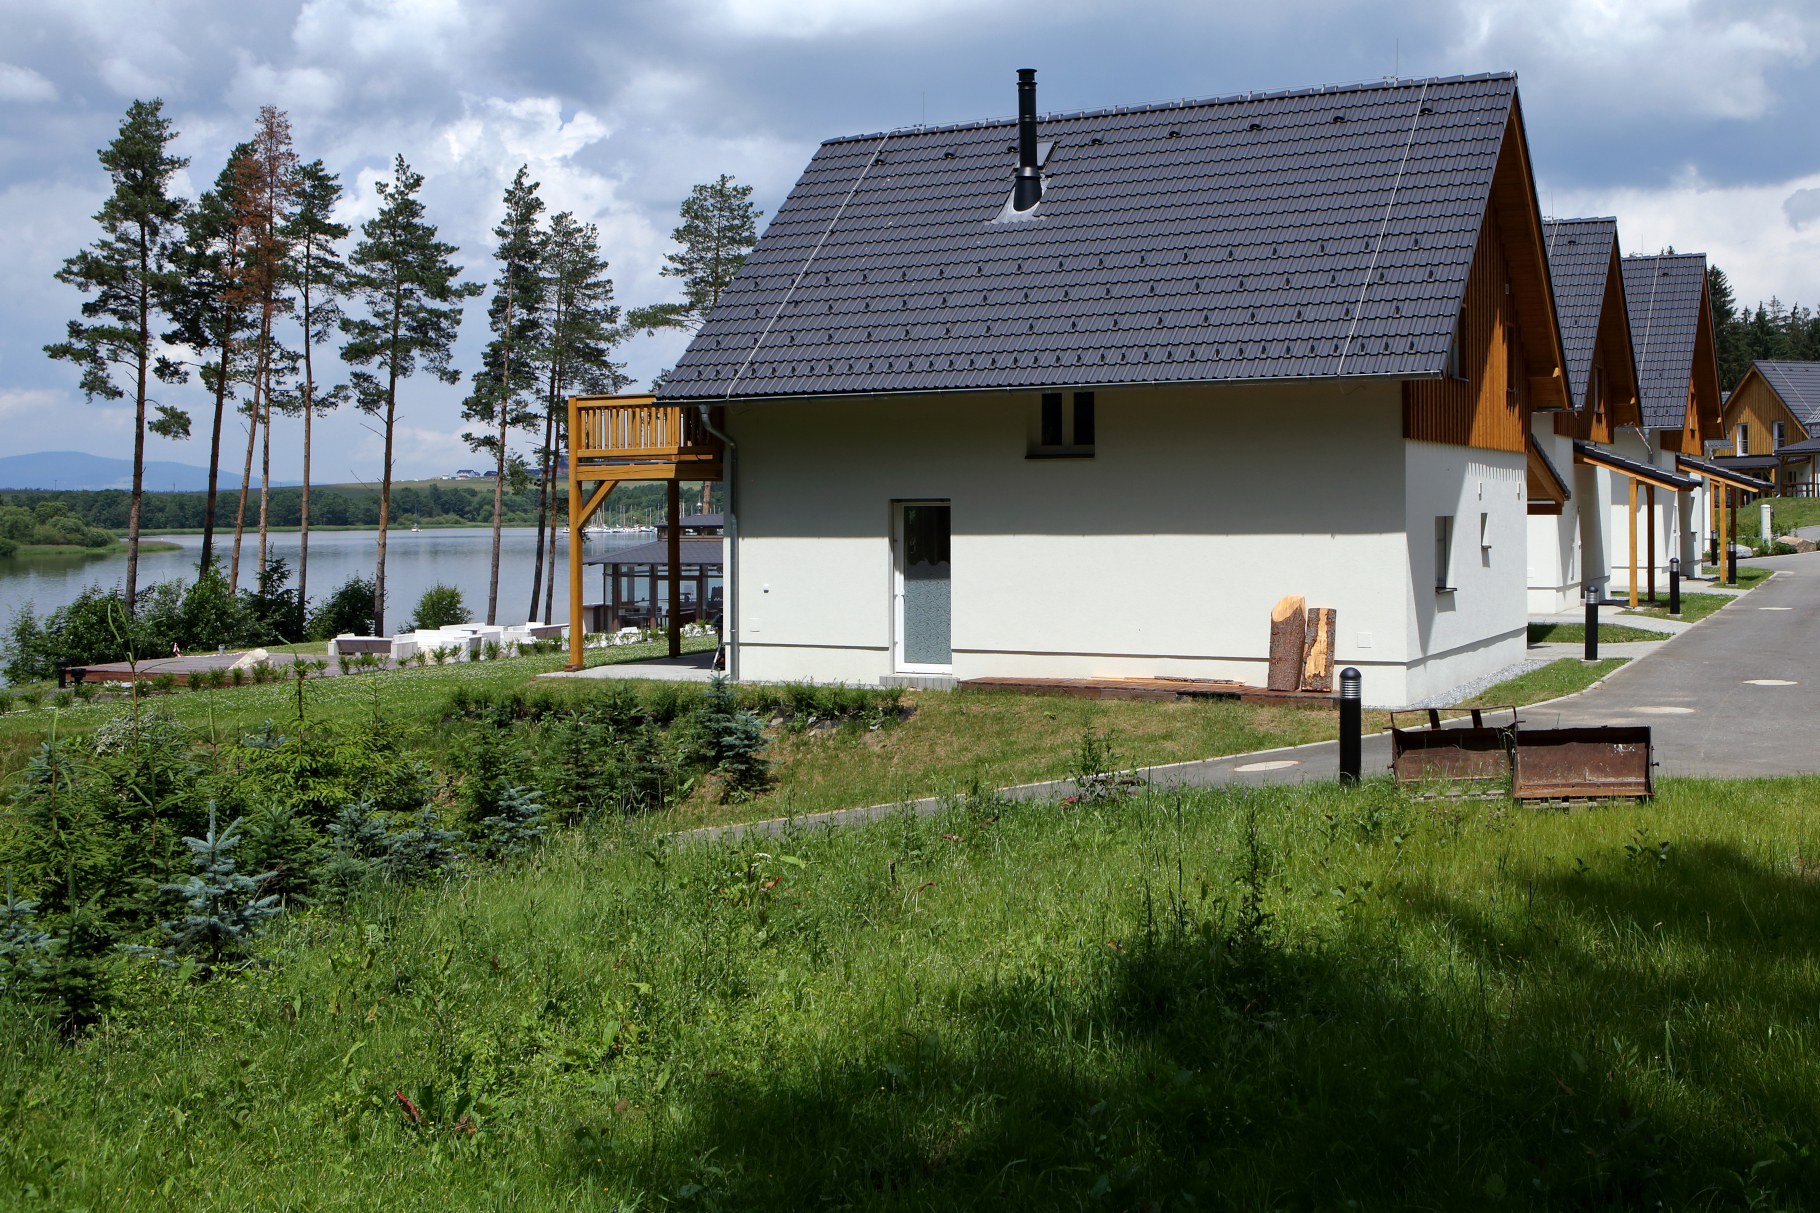 Lakeside Village Lipno nad Vltavou - Building construction